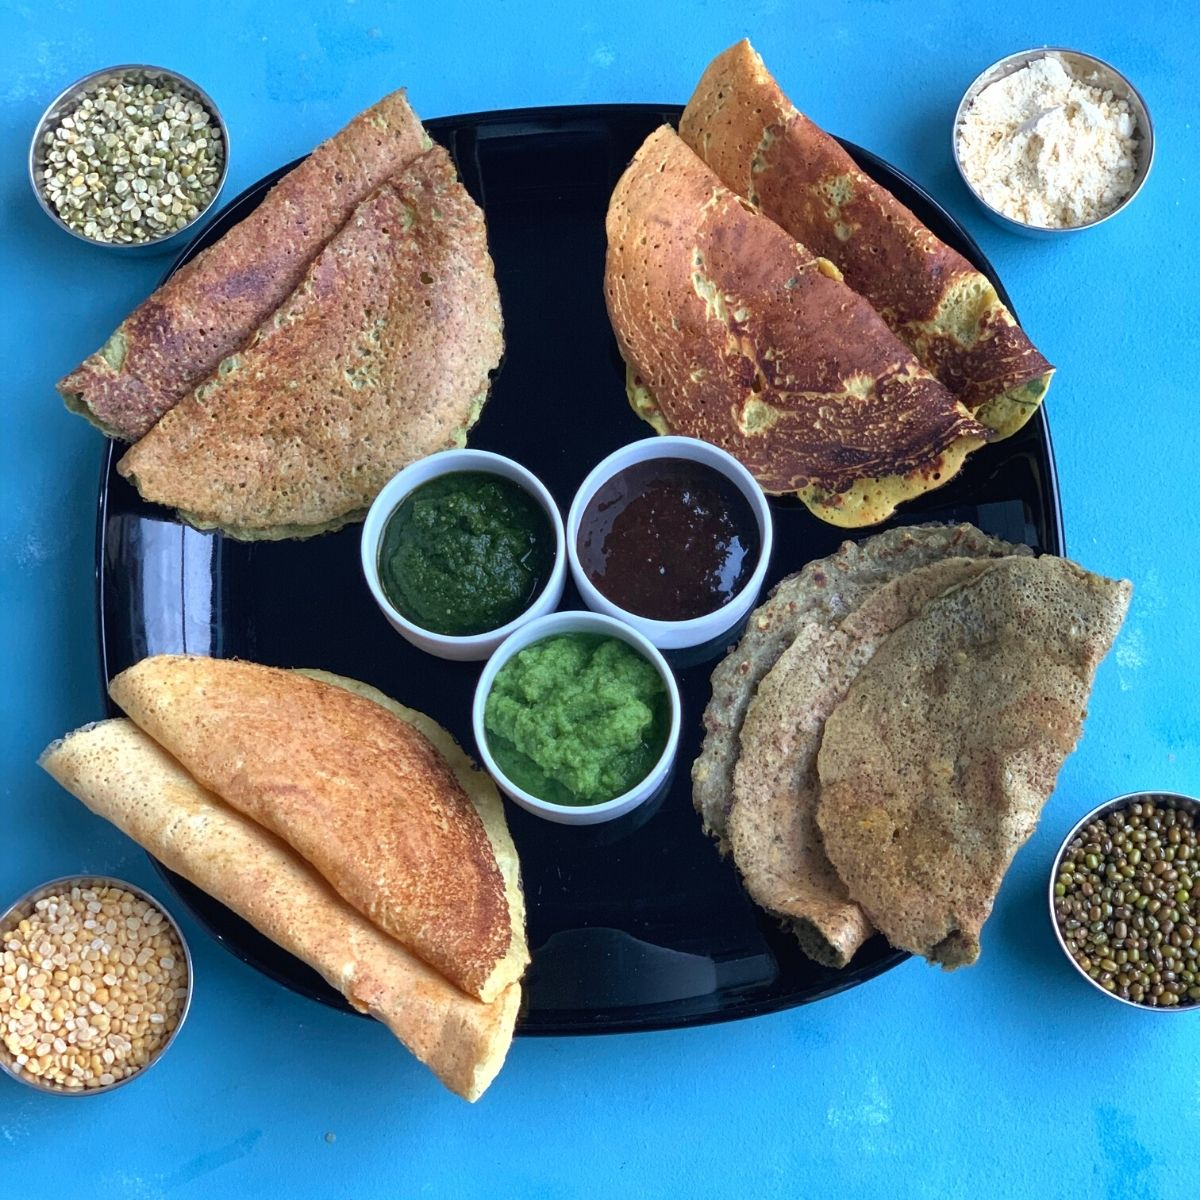 Protein-packed Chilla Platter had different types of vegan savory crepes from the North of Indian which can be served for breakfast or snack.